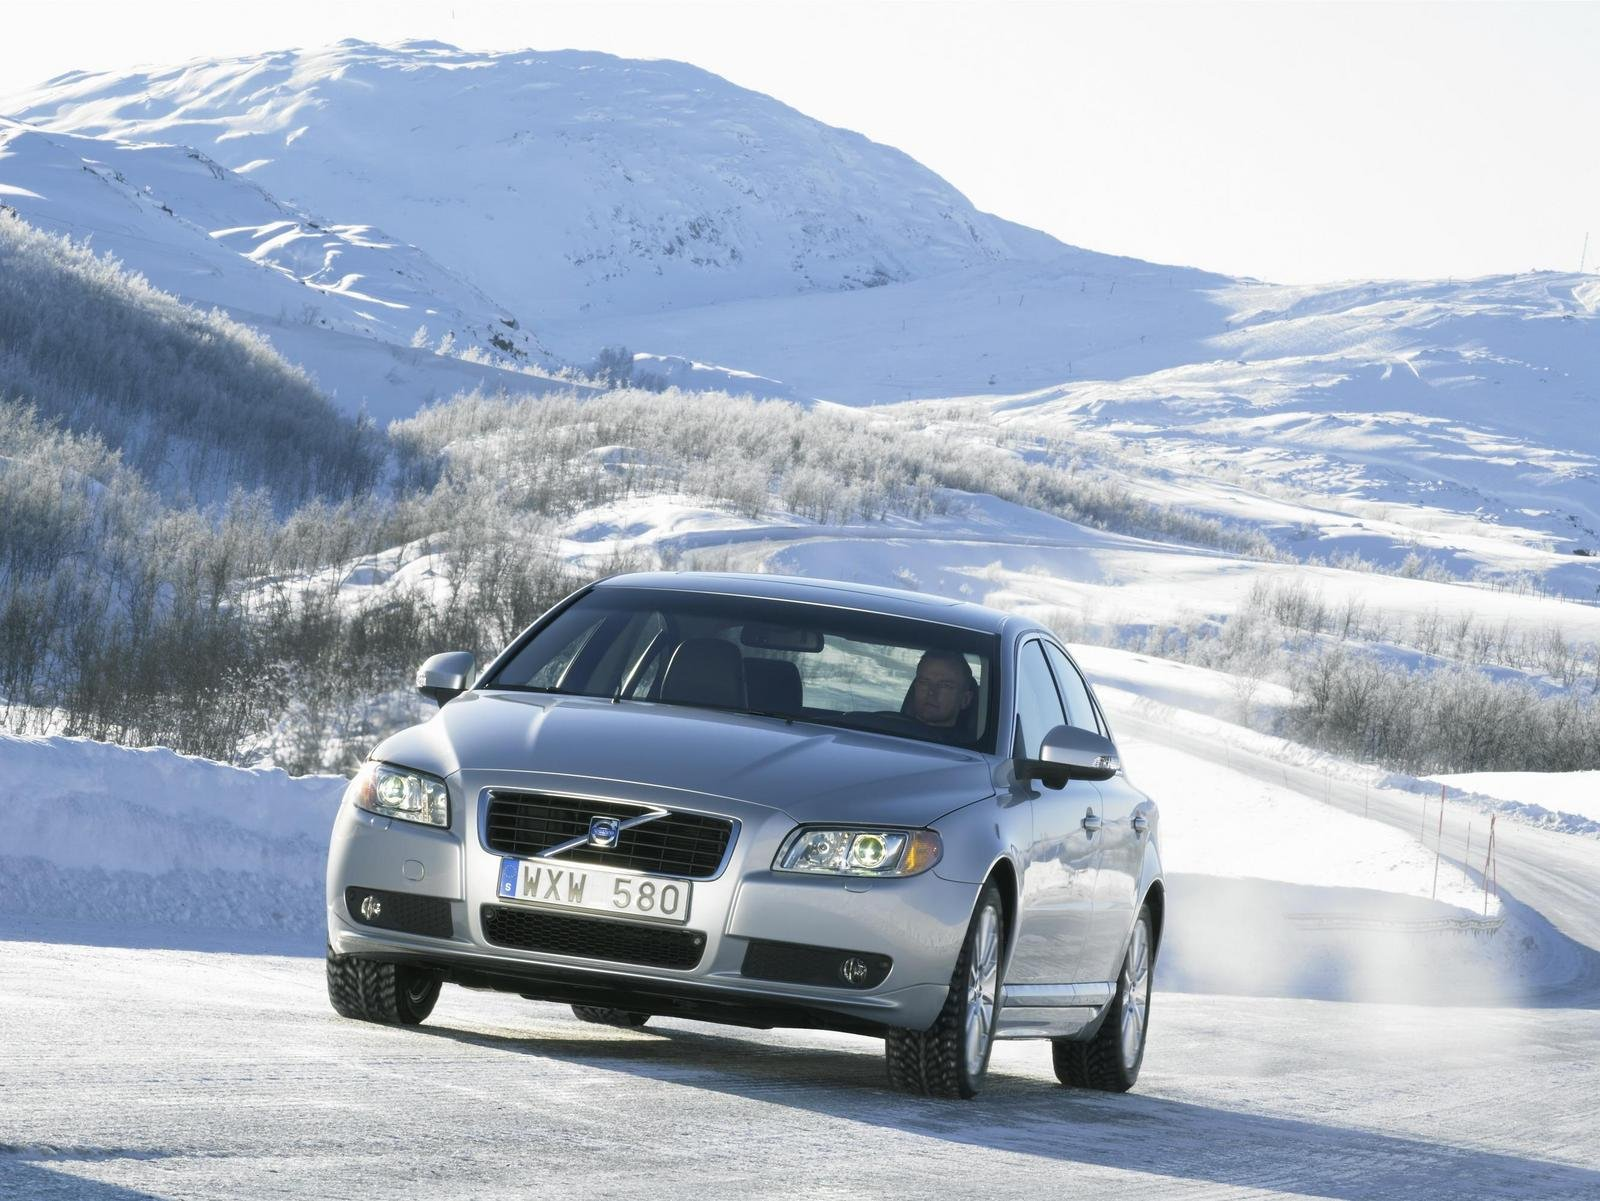 2008 volvo xc70 and s80 winter edition picture 227898 car review top speed. Black Bedroom Furniture Sets. Home Design Ideas